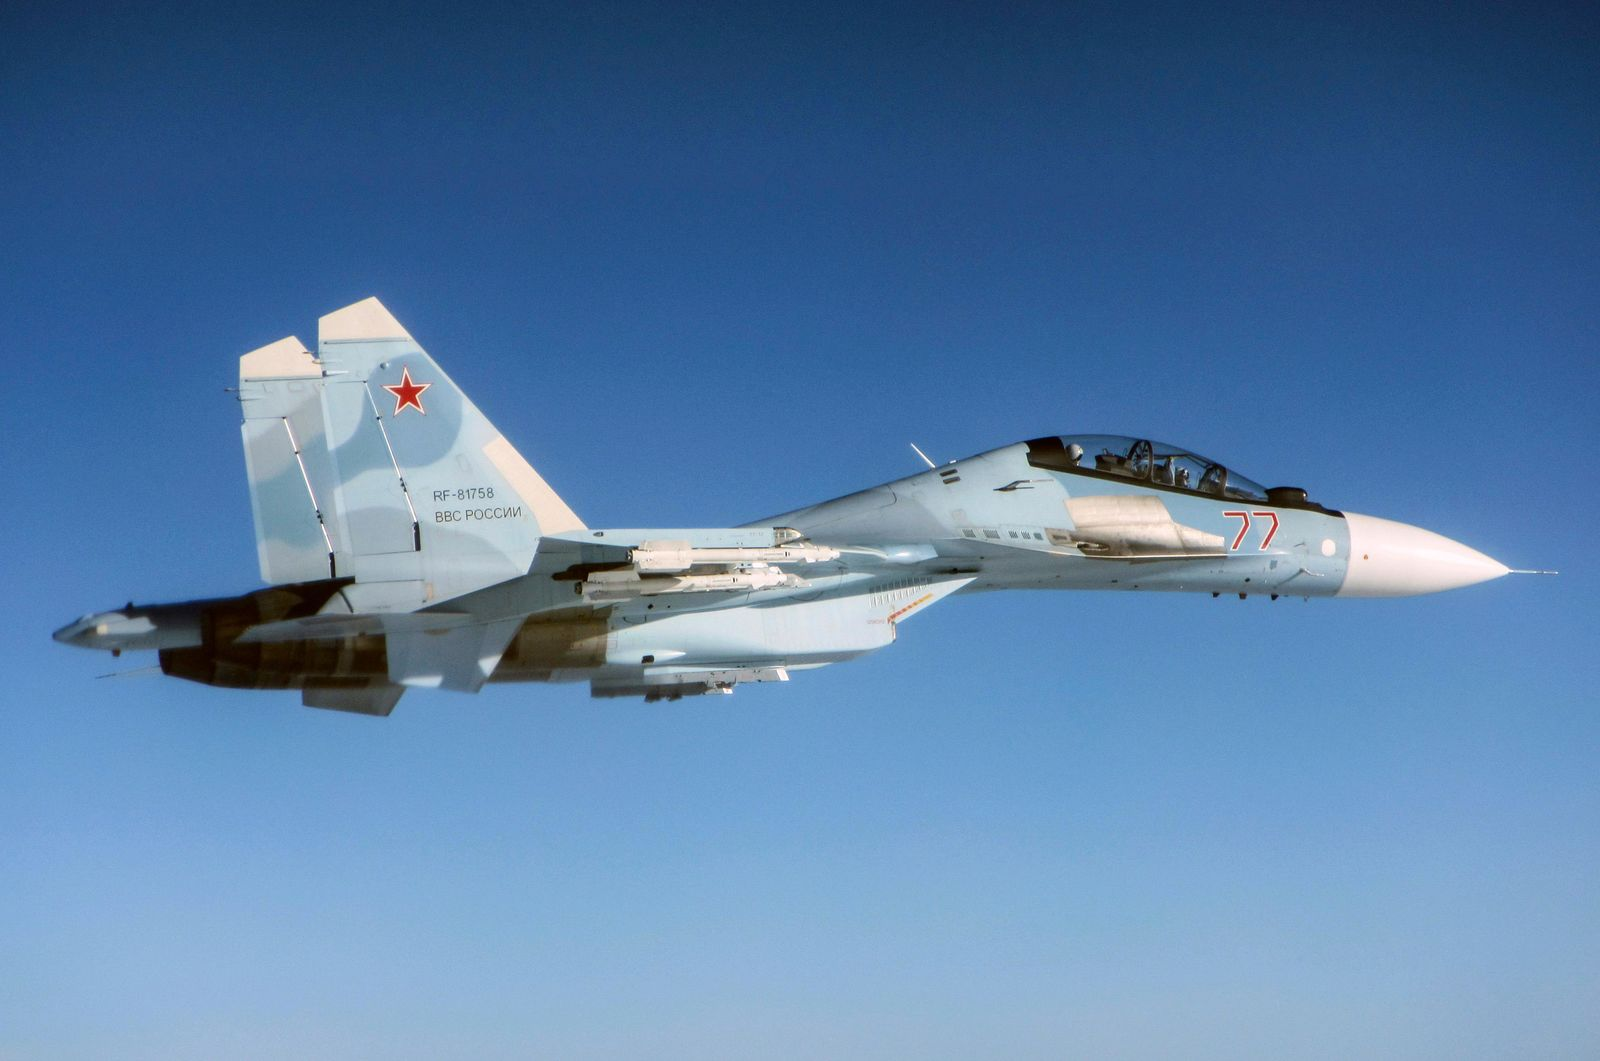 CAPTION CORRECTS AIRCRAFT NAME - In this photo  taken on Friday, June 14, 2019, a Russian Su-30 Flanker fighter flies over the Baltic Sea. Two Royal Air Force jets deployed in Estonia have been scrambled twice in recent days, bringing the number of intercepts of Russian aircraft to eight since taking over the Baltic Air Policing mission in early May. (UK Ministry of Defence via AP)